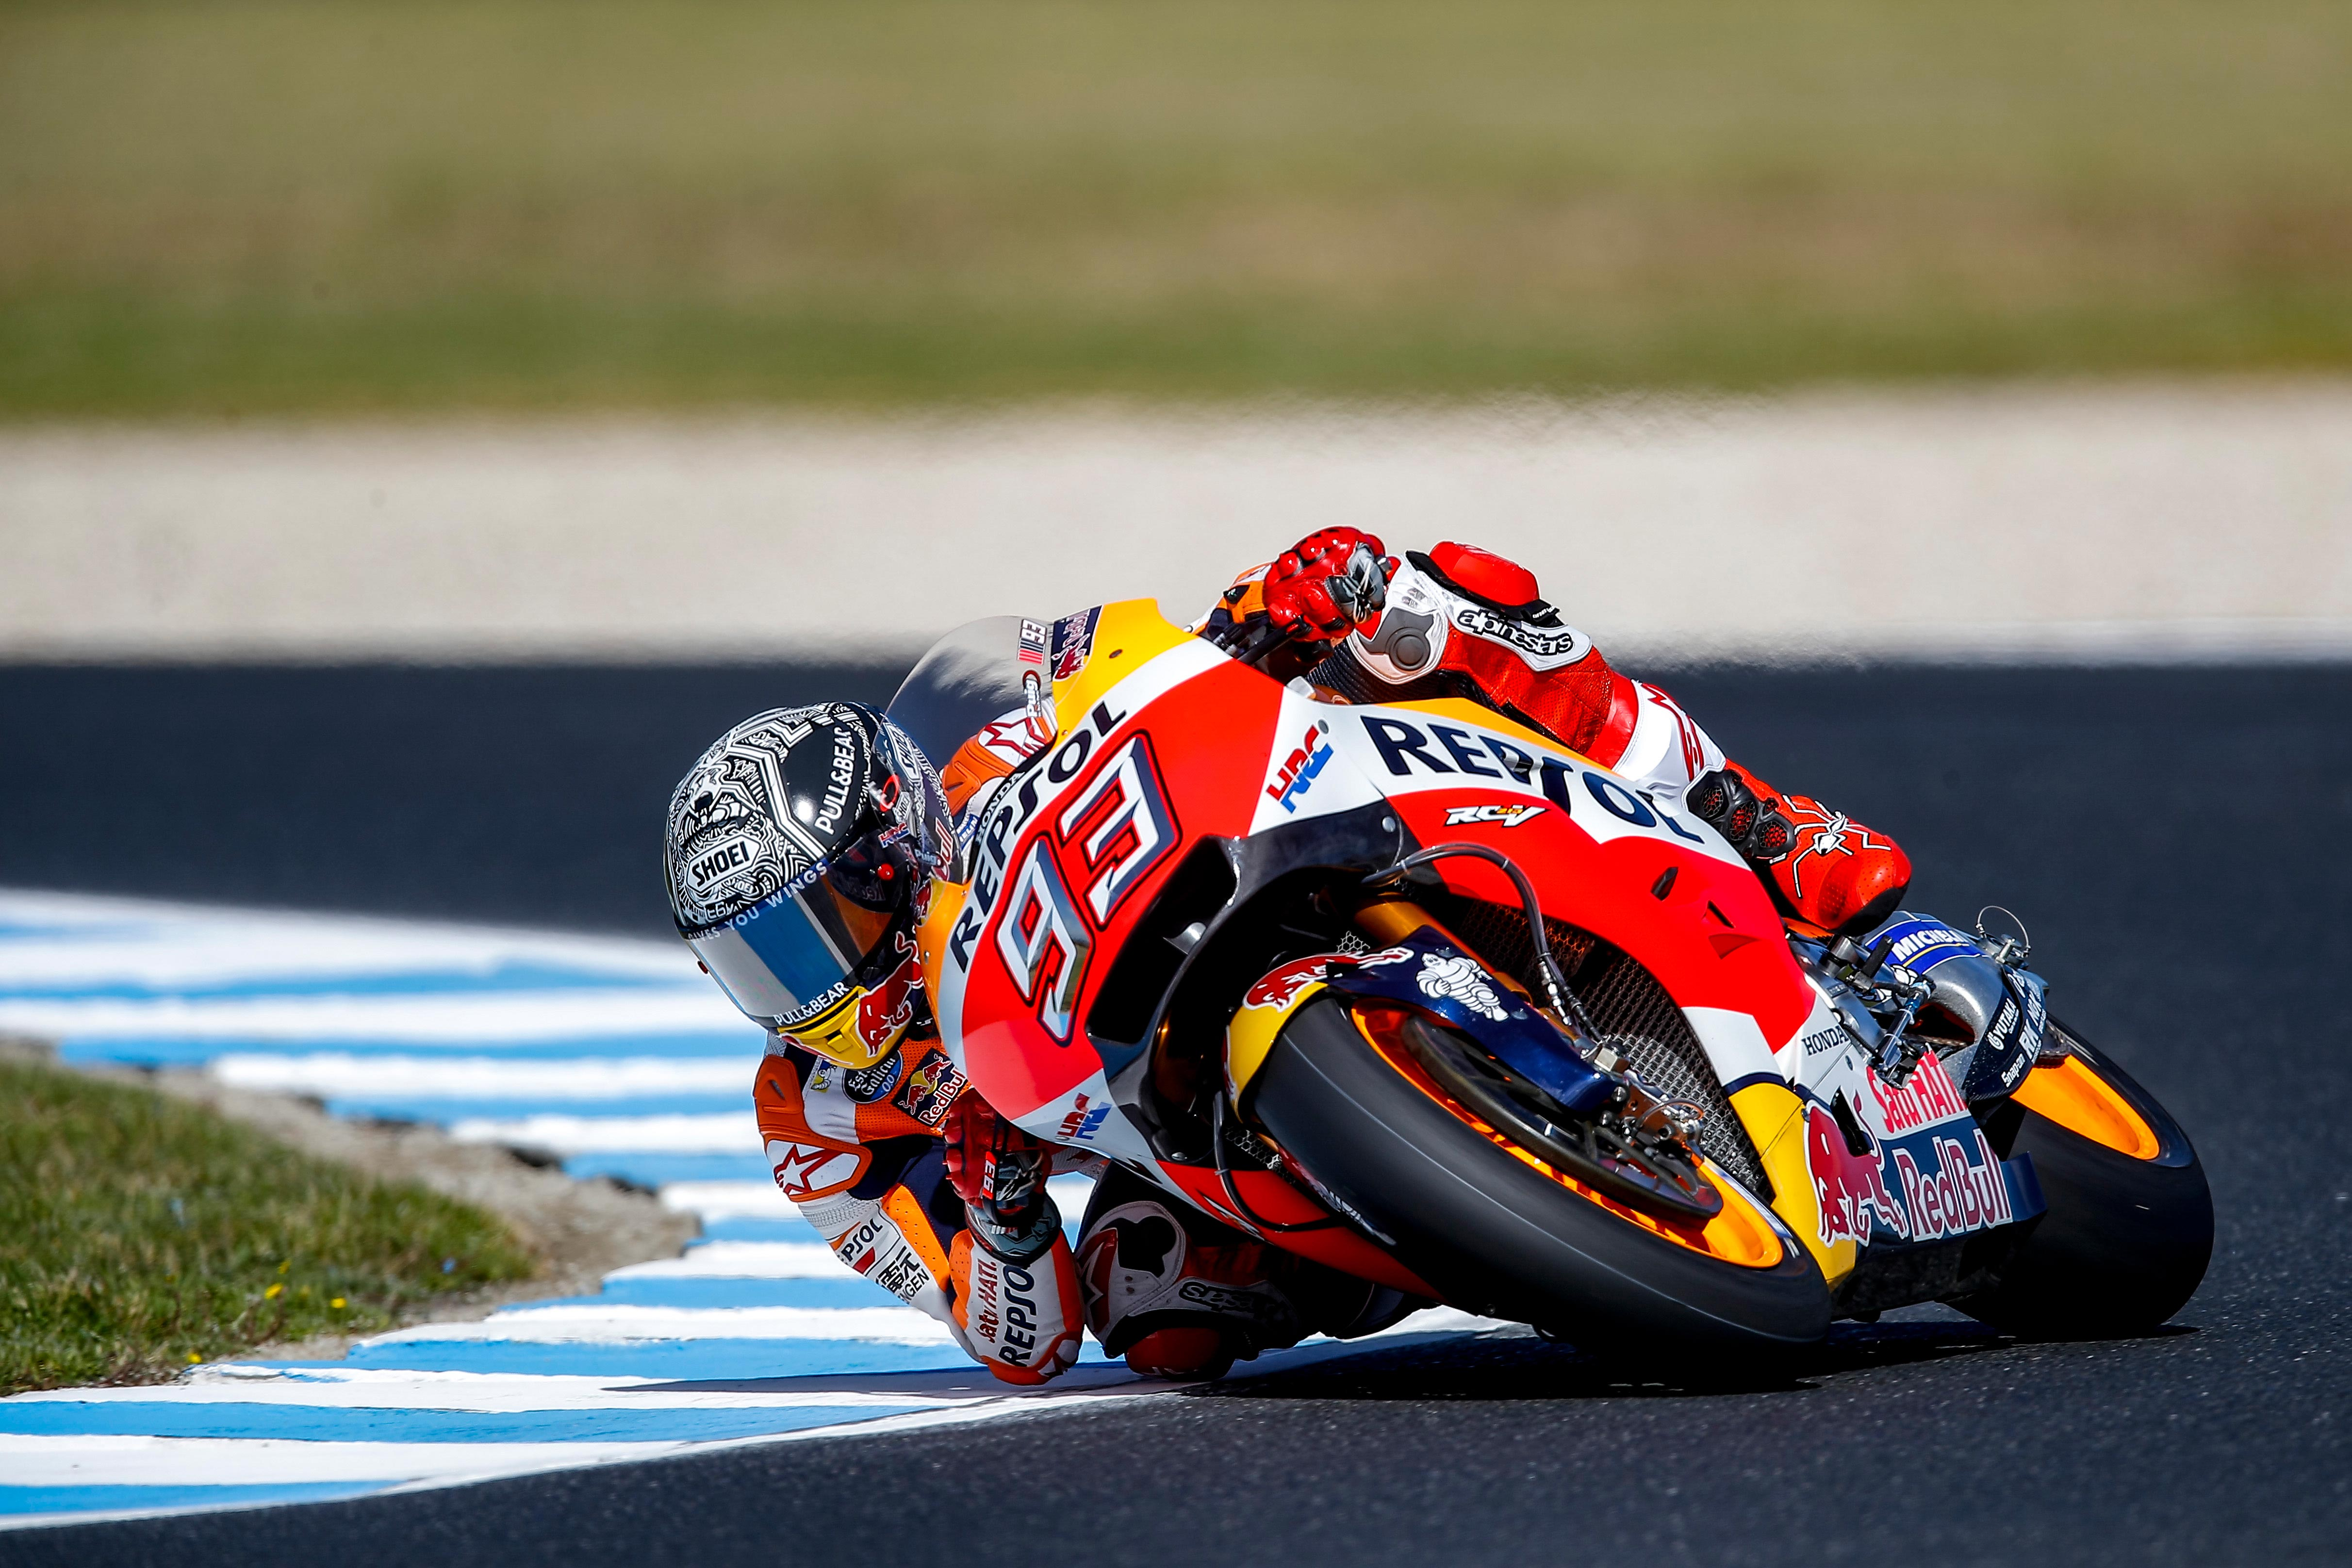 MotoGP Phillip Island MotoGP Test Summary - Day 1